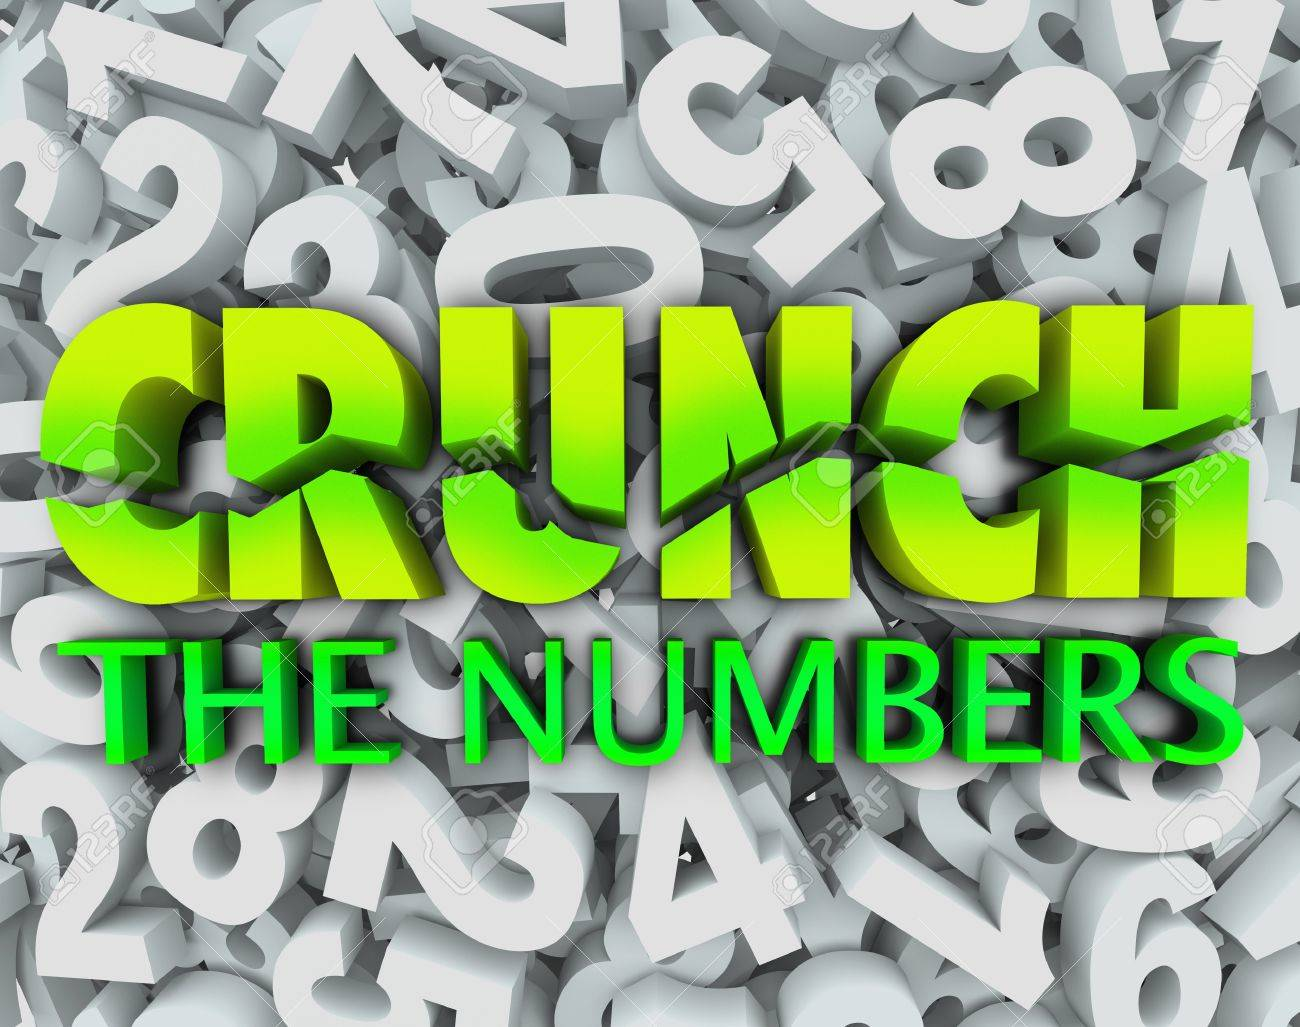 20861056-the-words-crunch-the-numbers-on